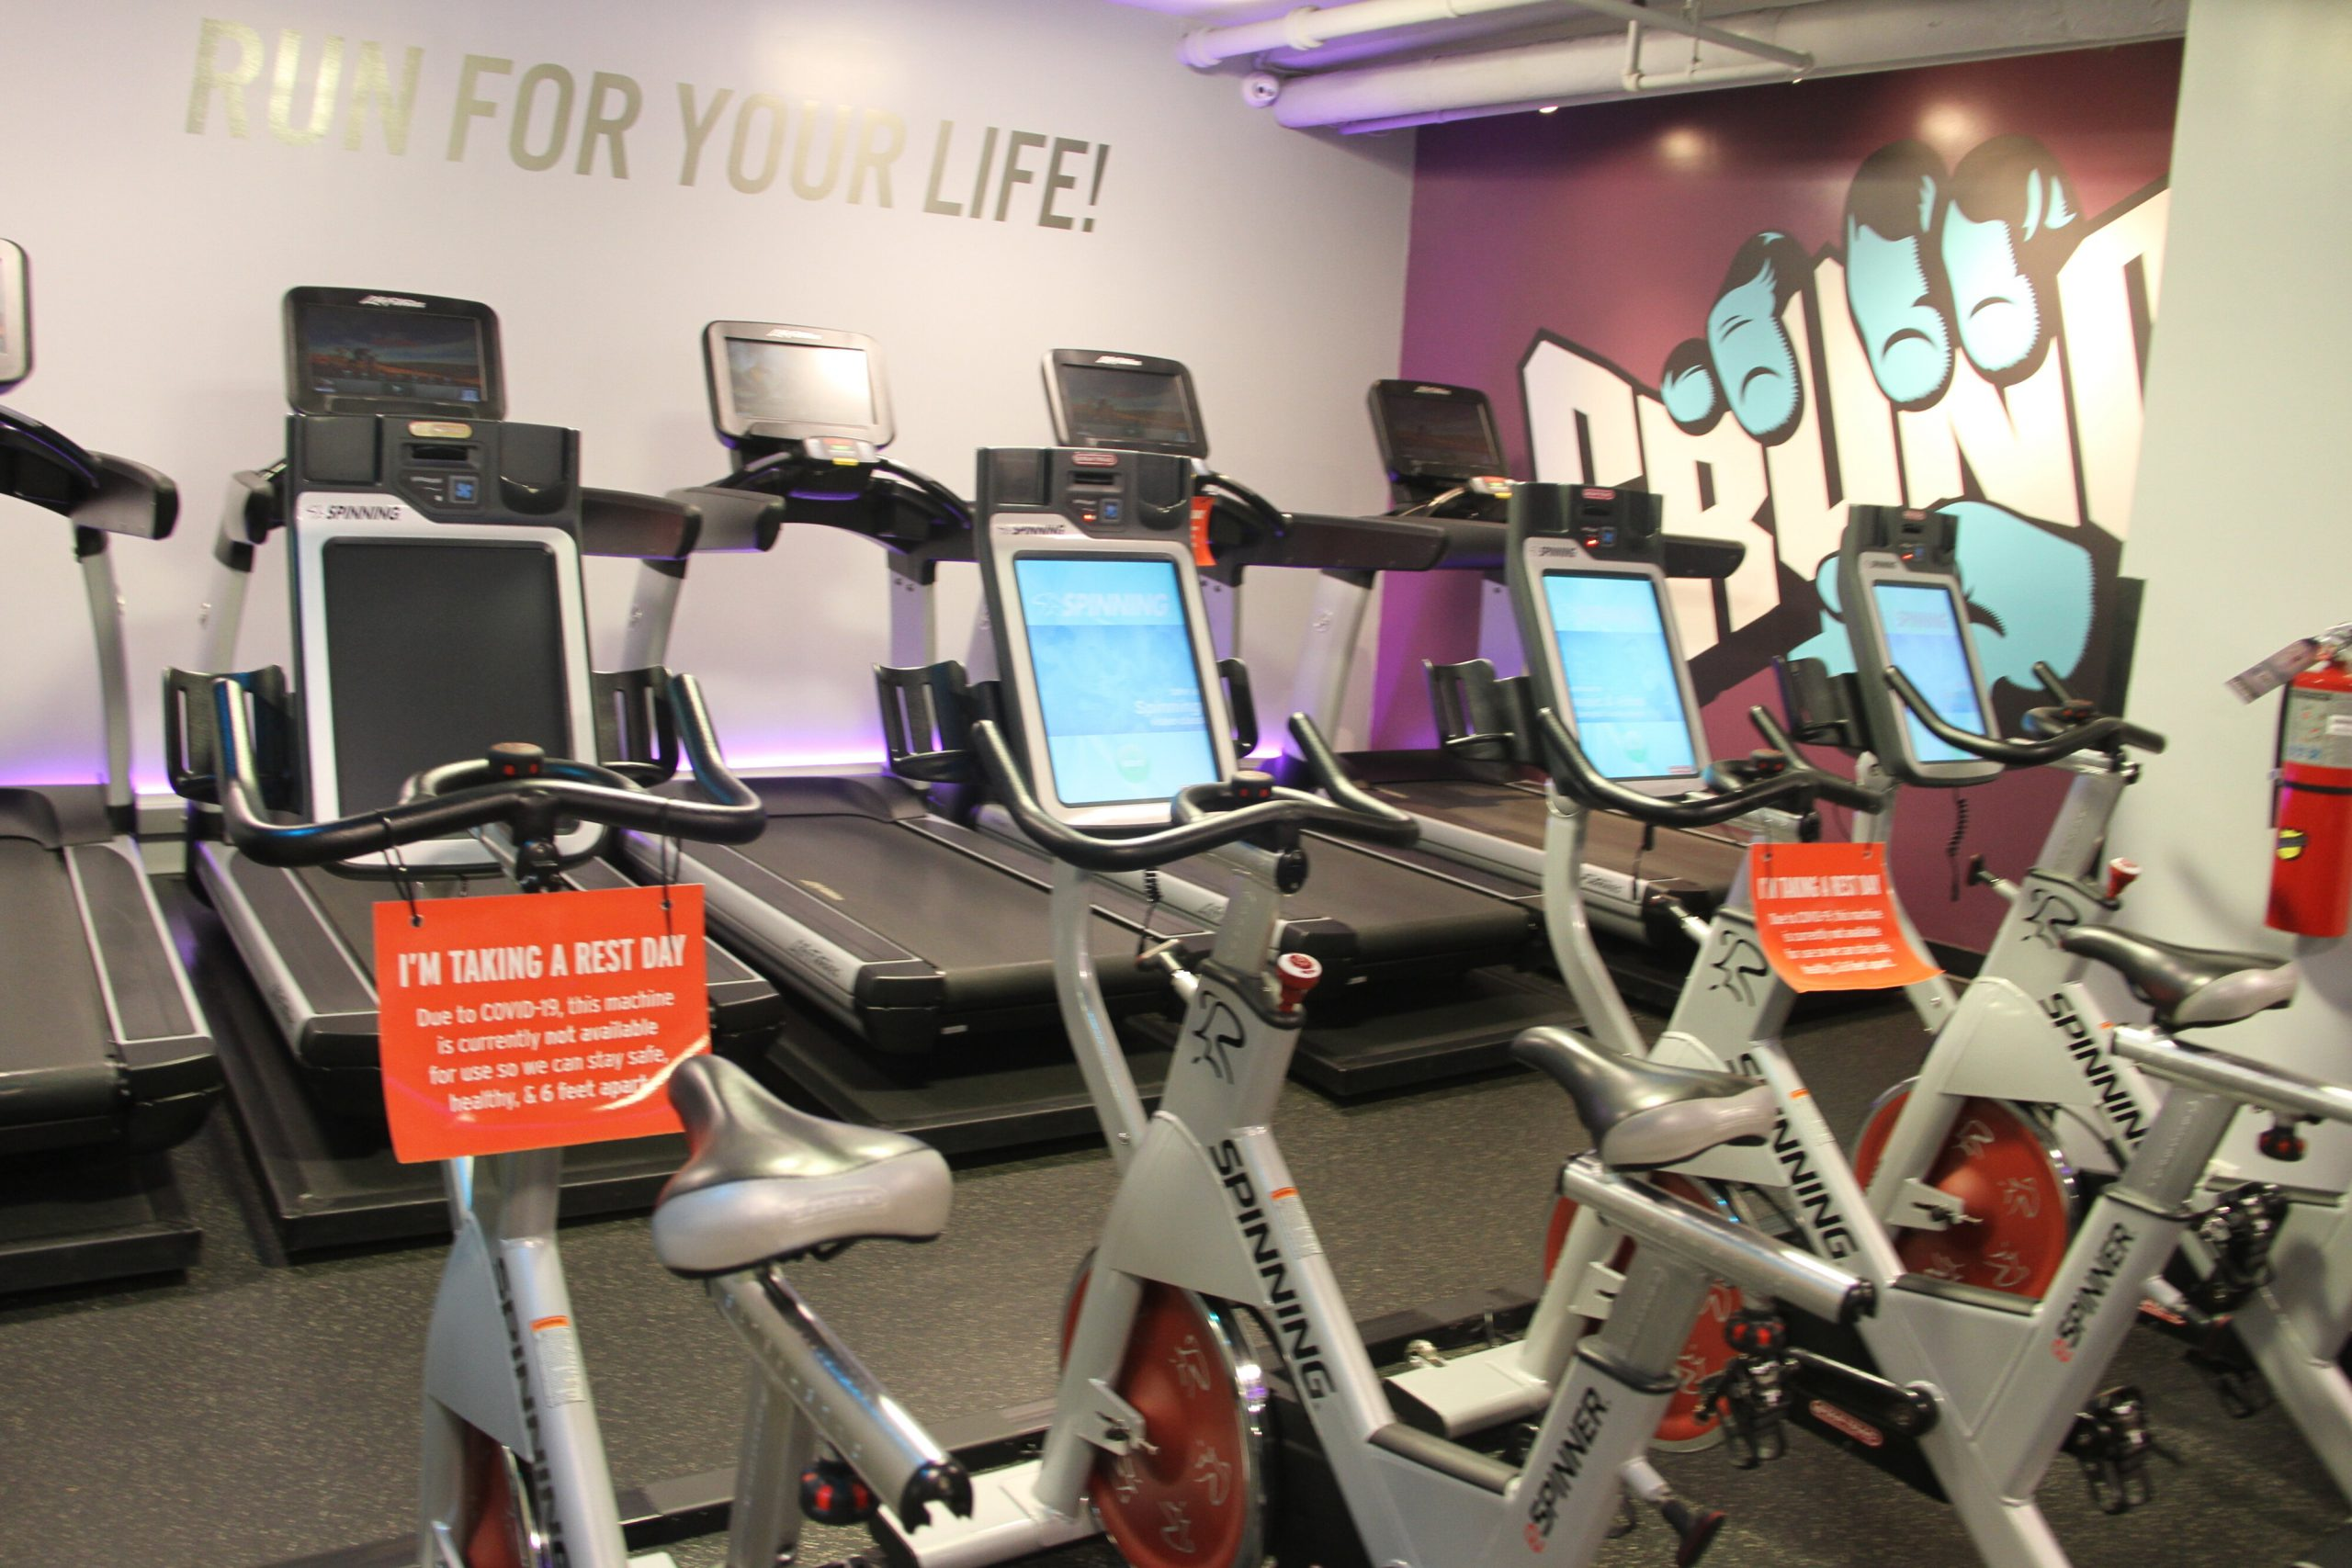 Personal trainers and students disappointed by  gym closures